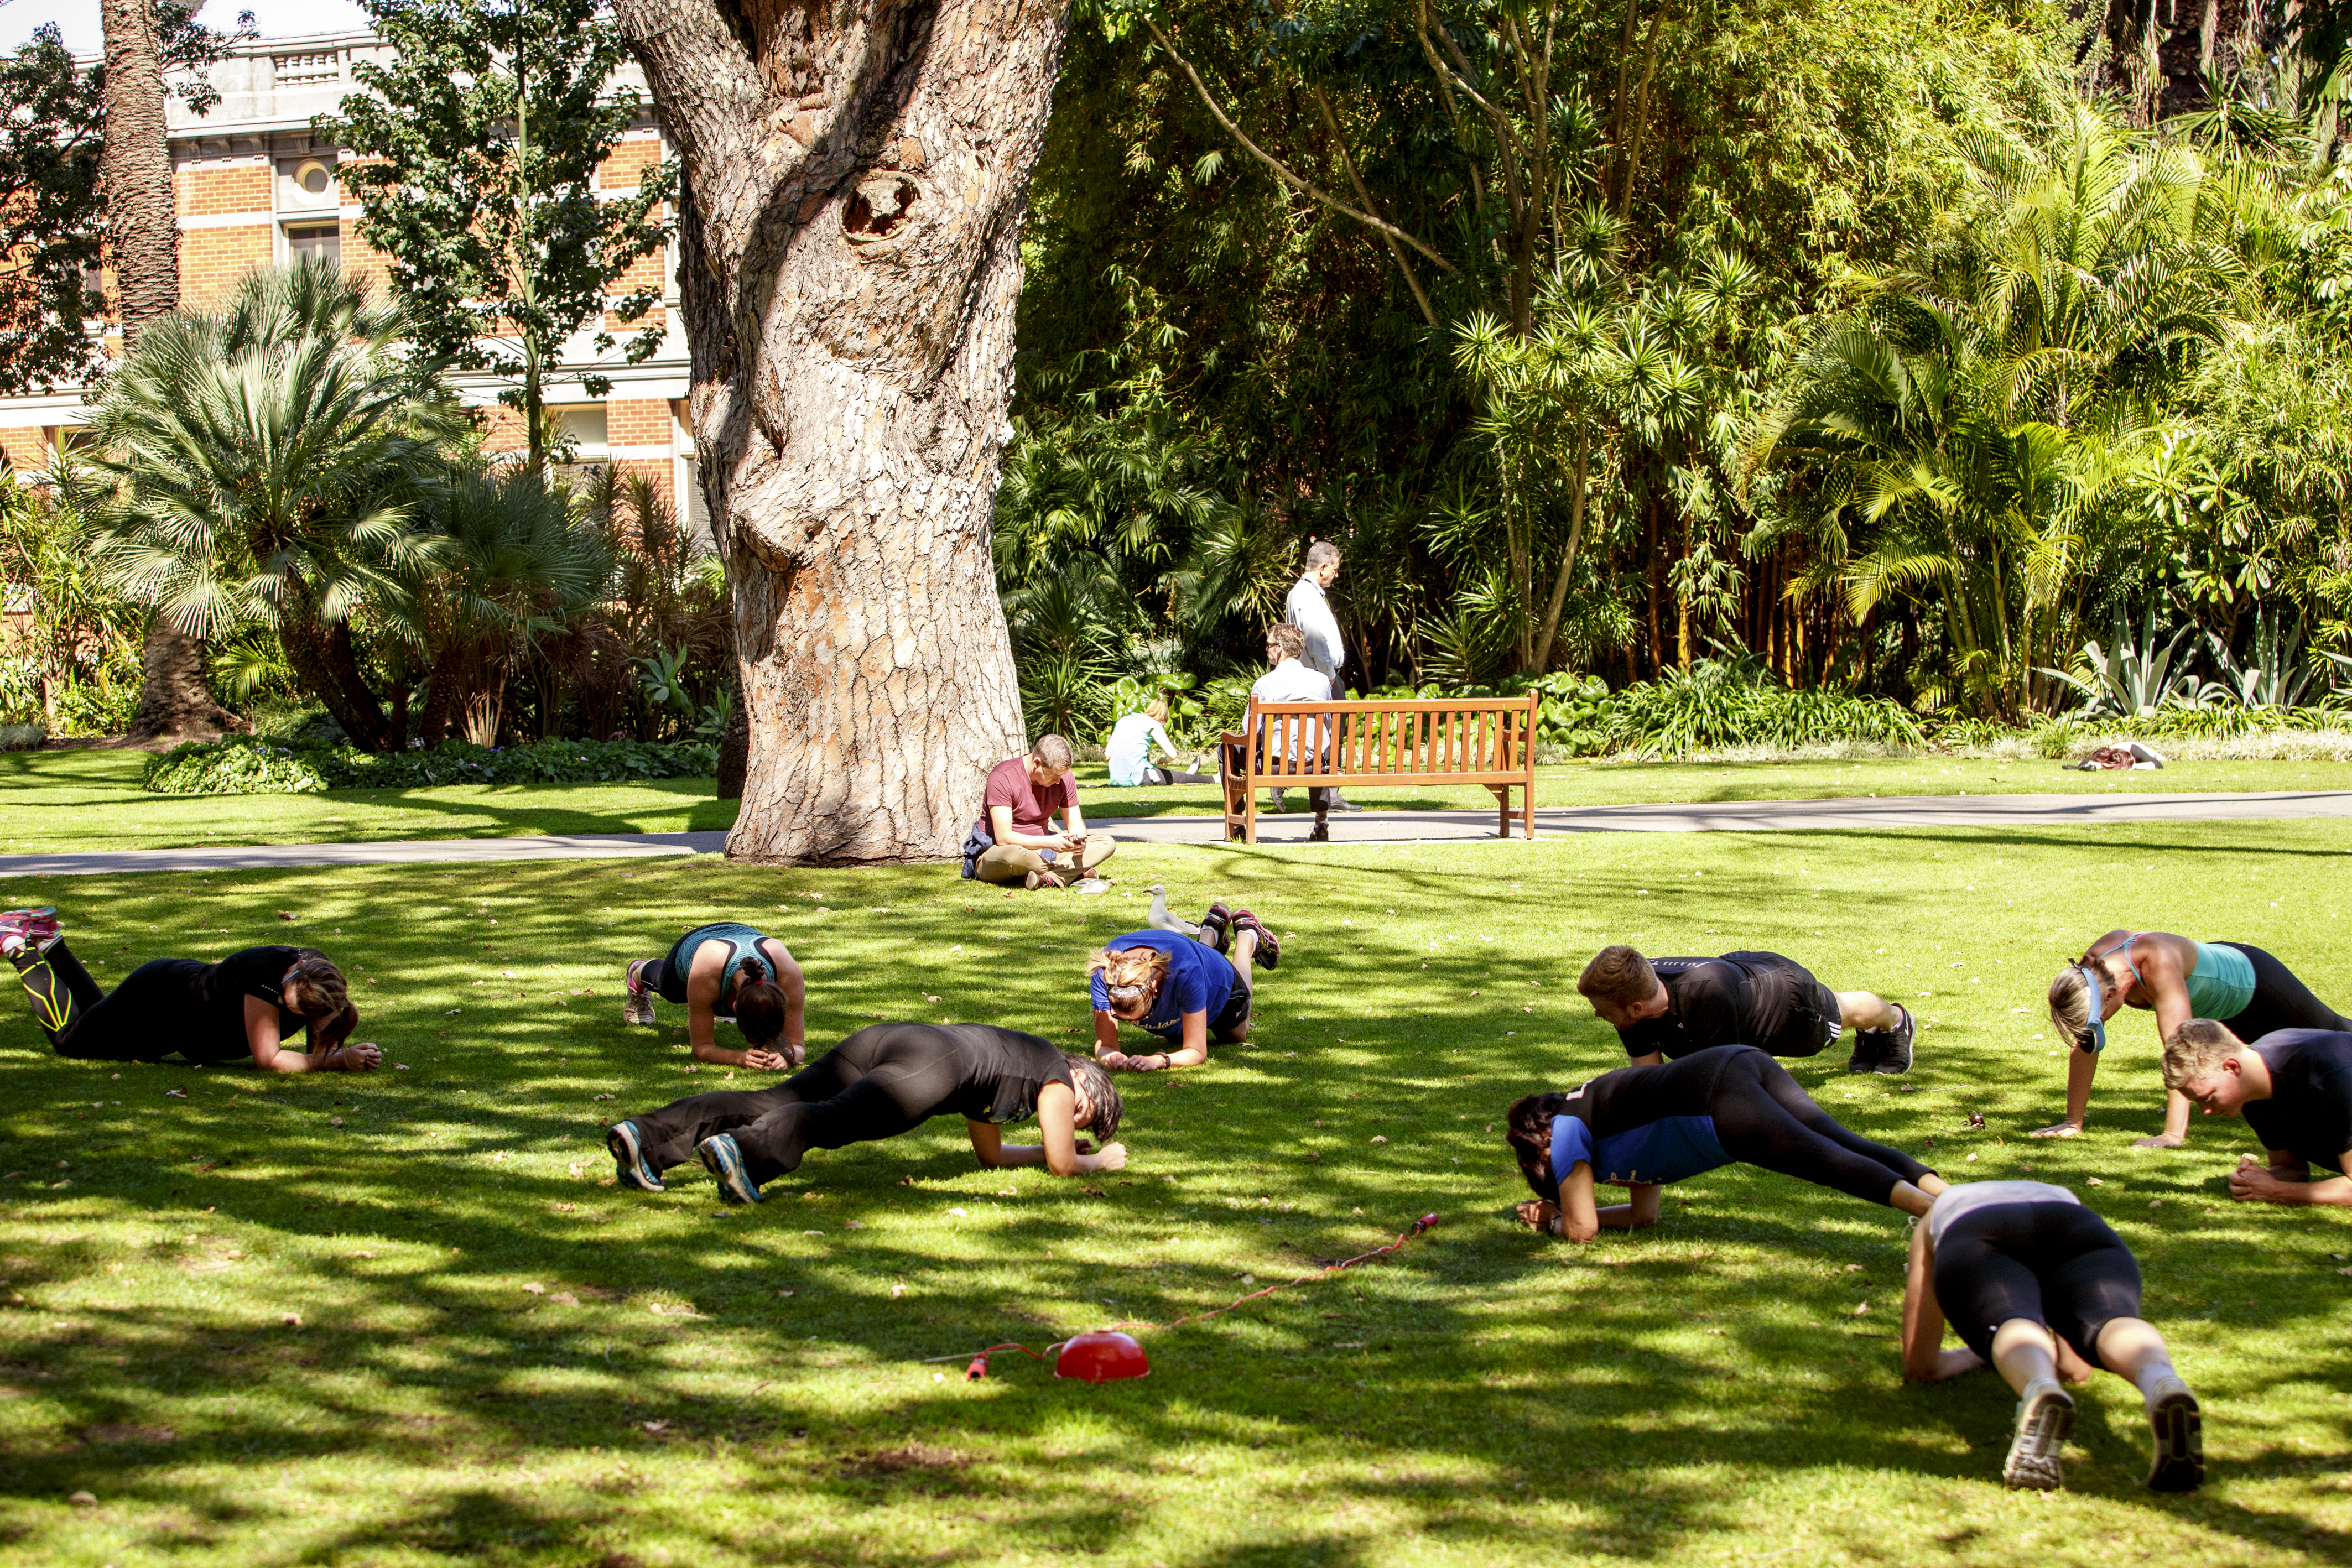 Group fitness sessions at council house gardens